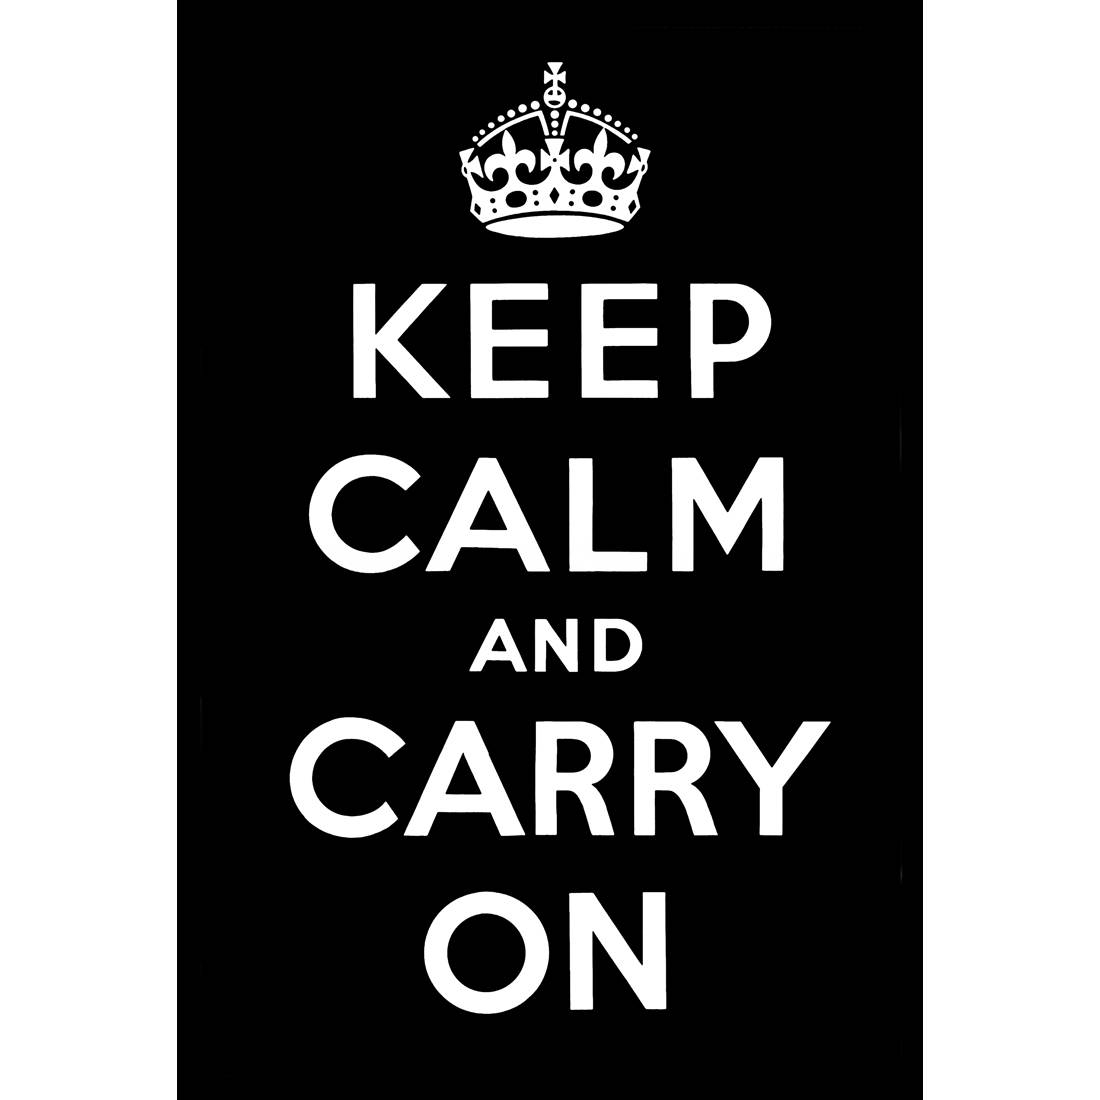 Keep Calm And Carry On, Black – Canvas Print – Wall Art – Australia Intended For Most Up To Date Keep Calm And Carry On Wall Art (View 8 of 25)